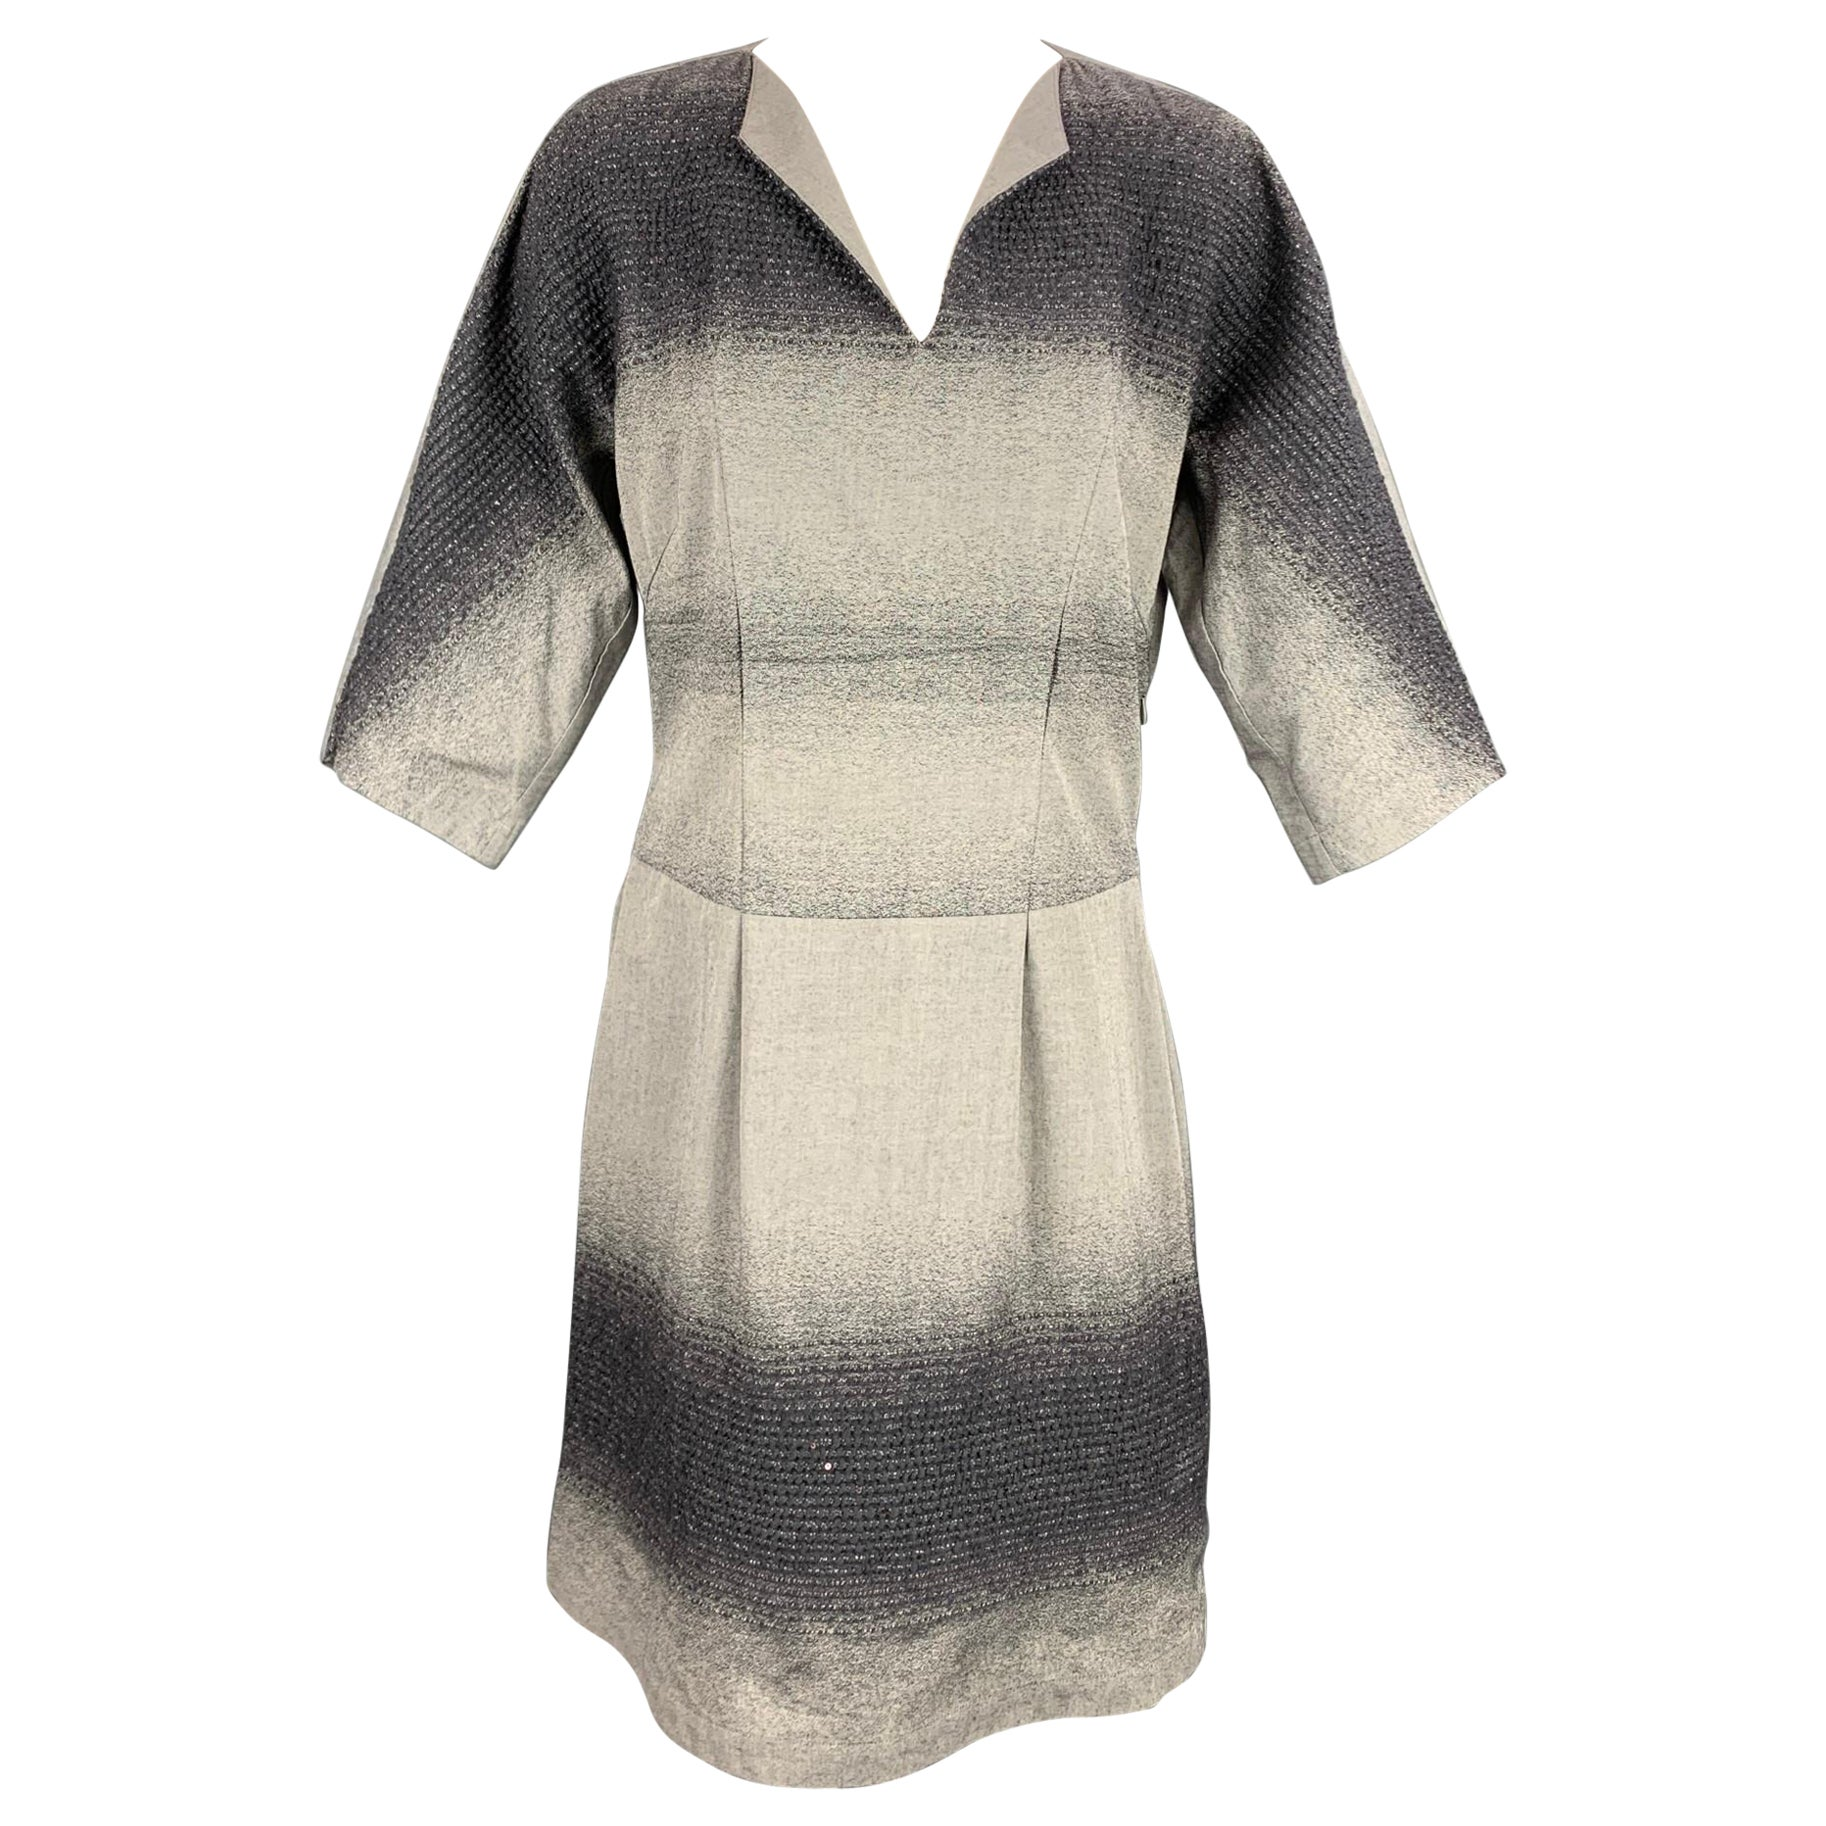 HEART HAAT by ISSEY MIYAKE Size M Grey & Charcoal Cotton Blend Ombre Dress